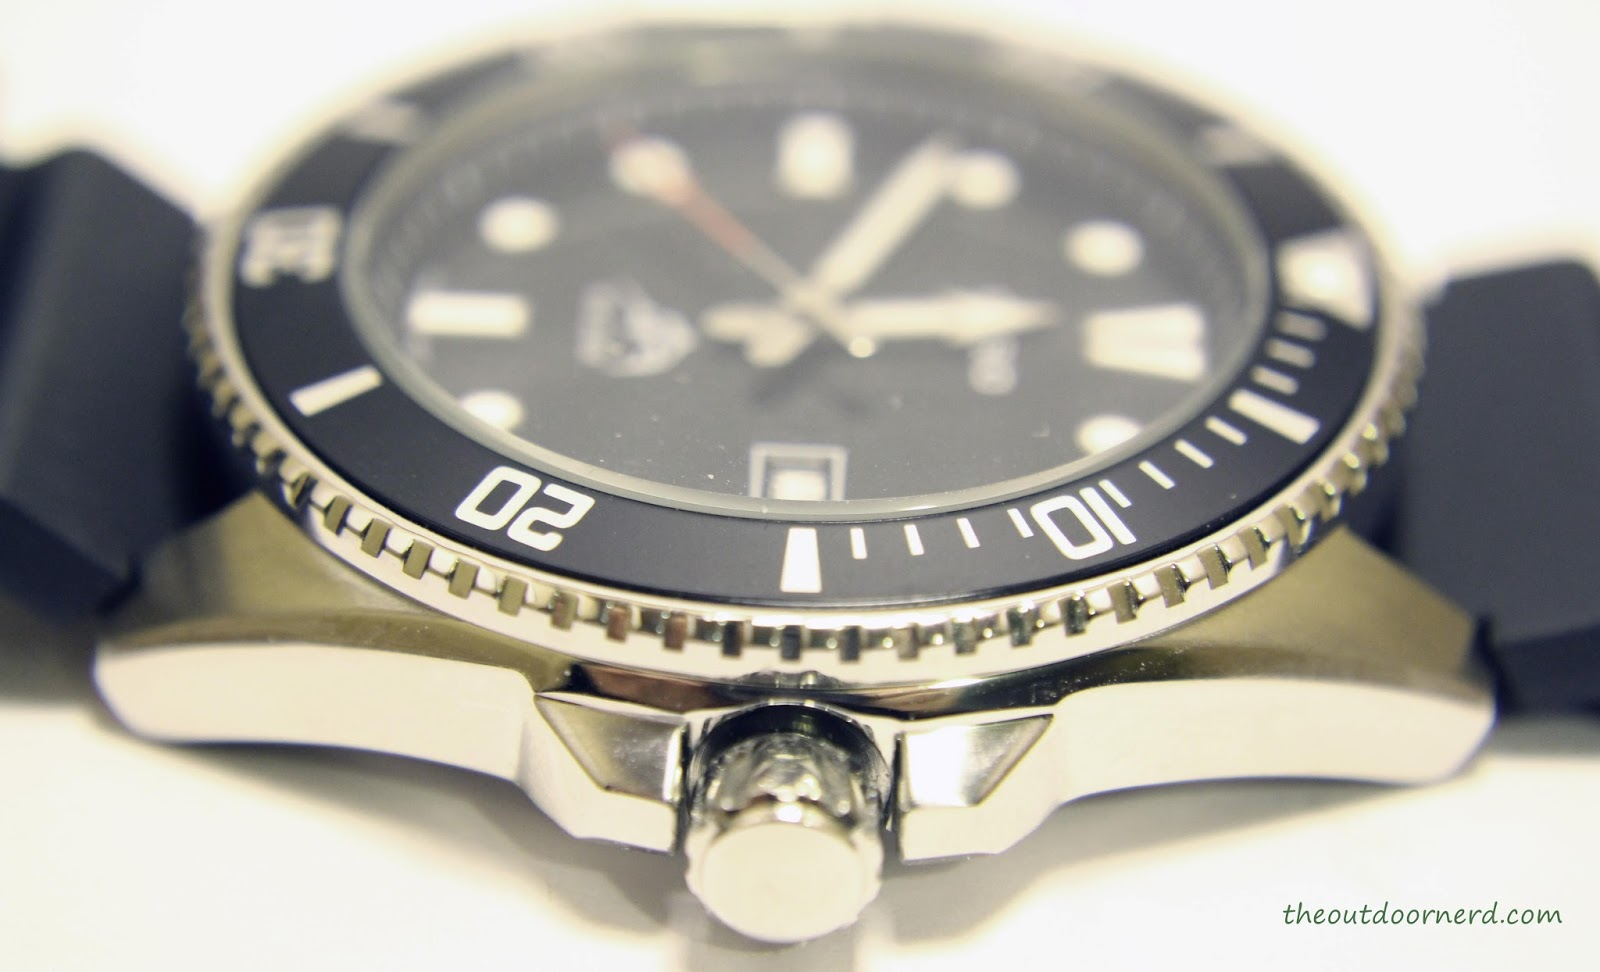 Casio MDV106-1A Diver's Watch: Side View of Case